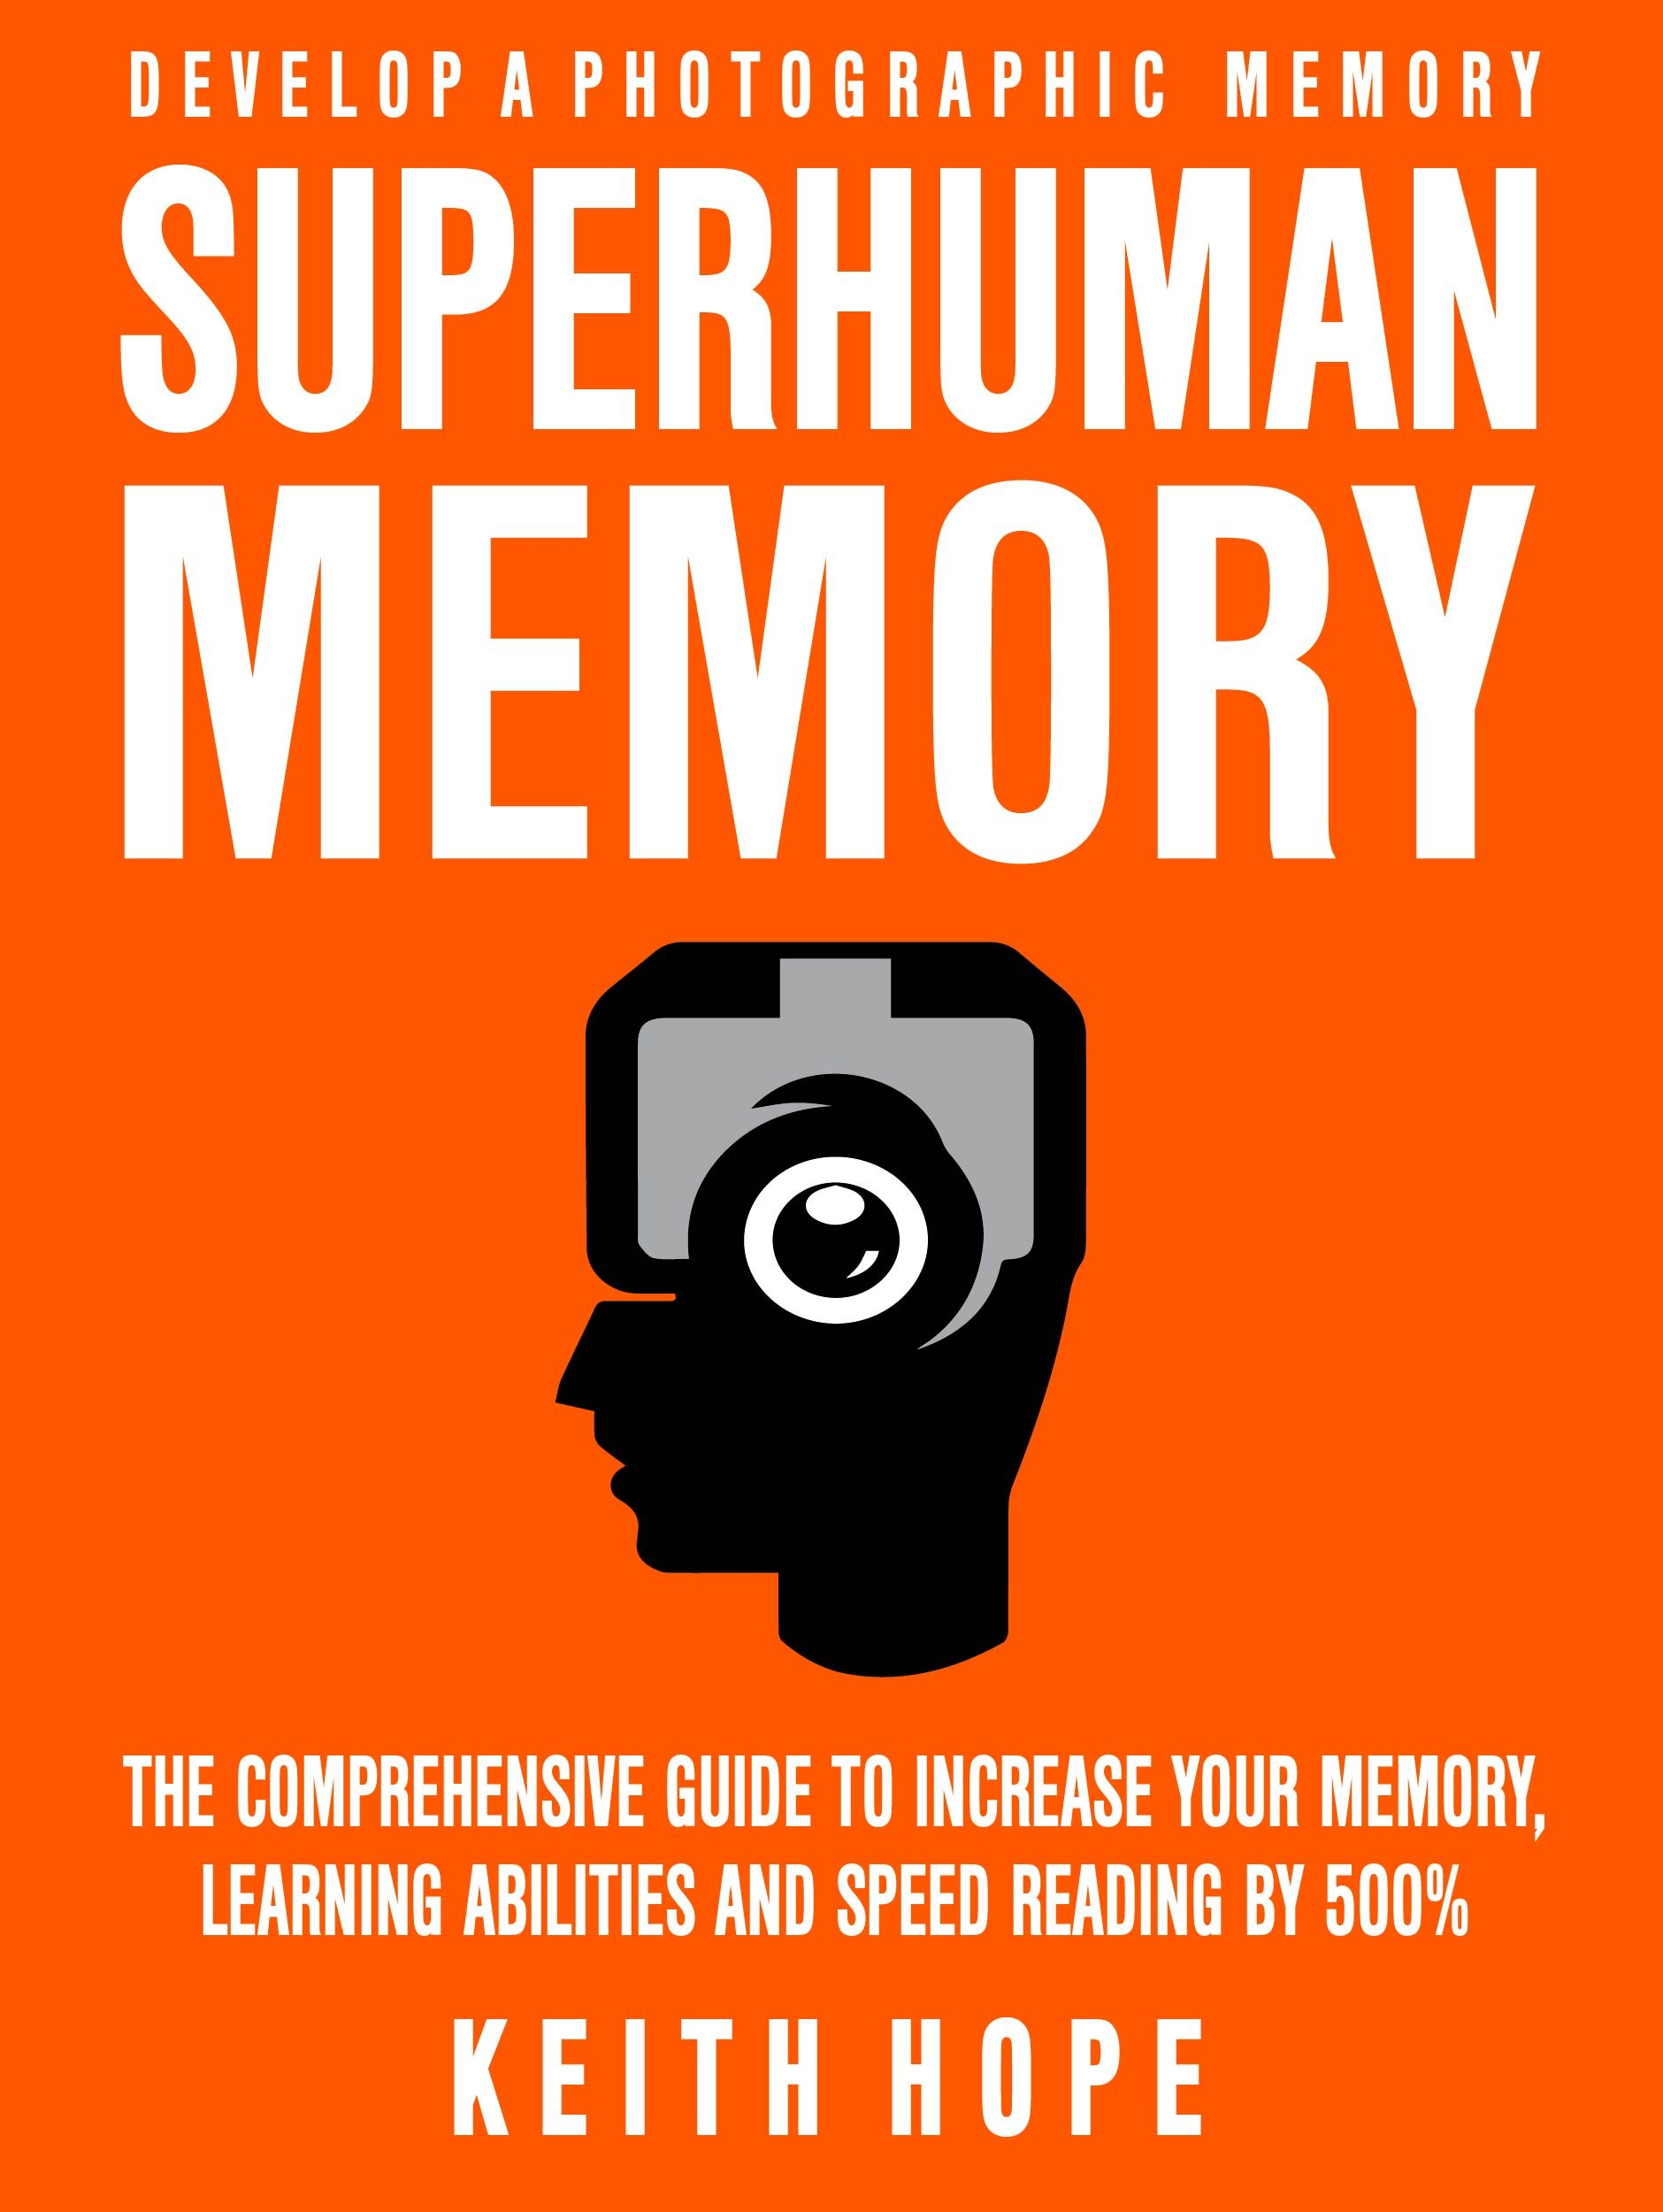 Superhuman Memory: The Comprehensive Guide To Increase Your Memory, Learning Abilities, And Speed Reading By 500% - Develo...